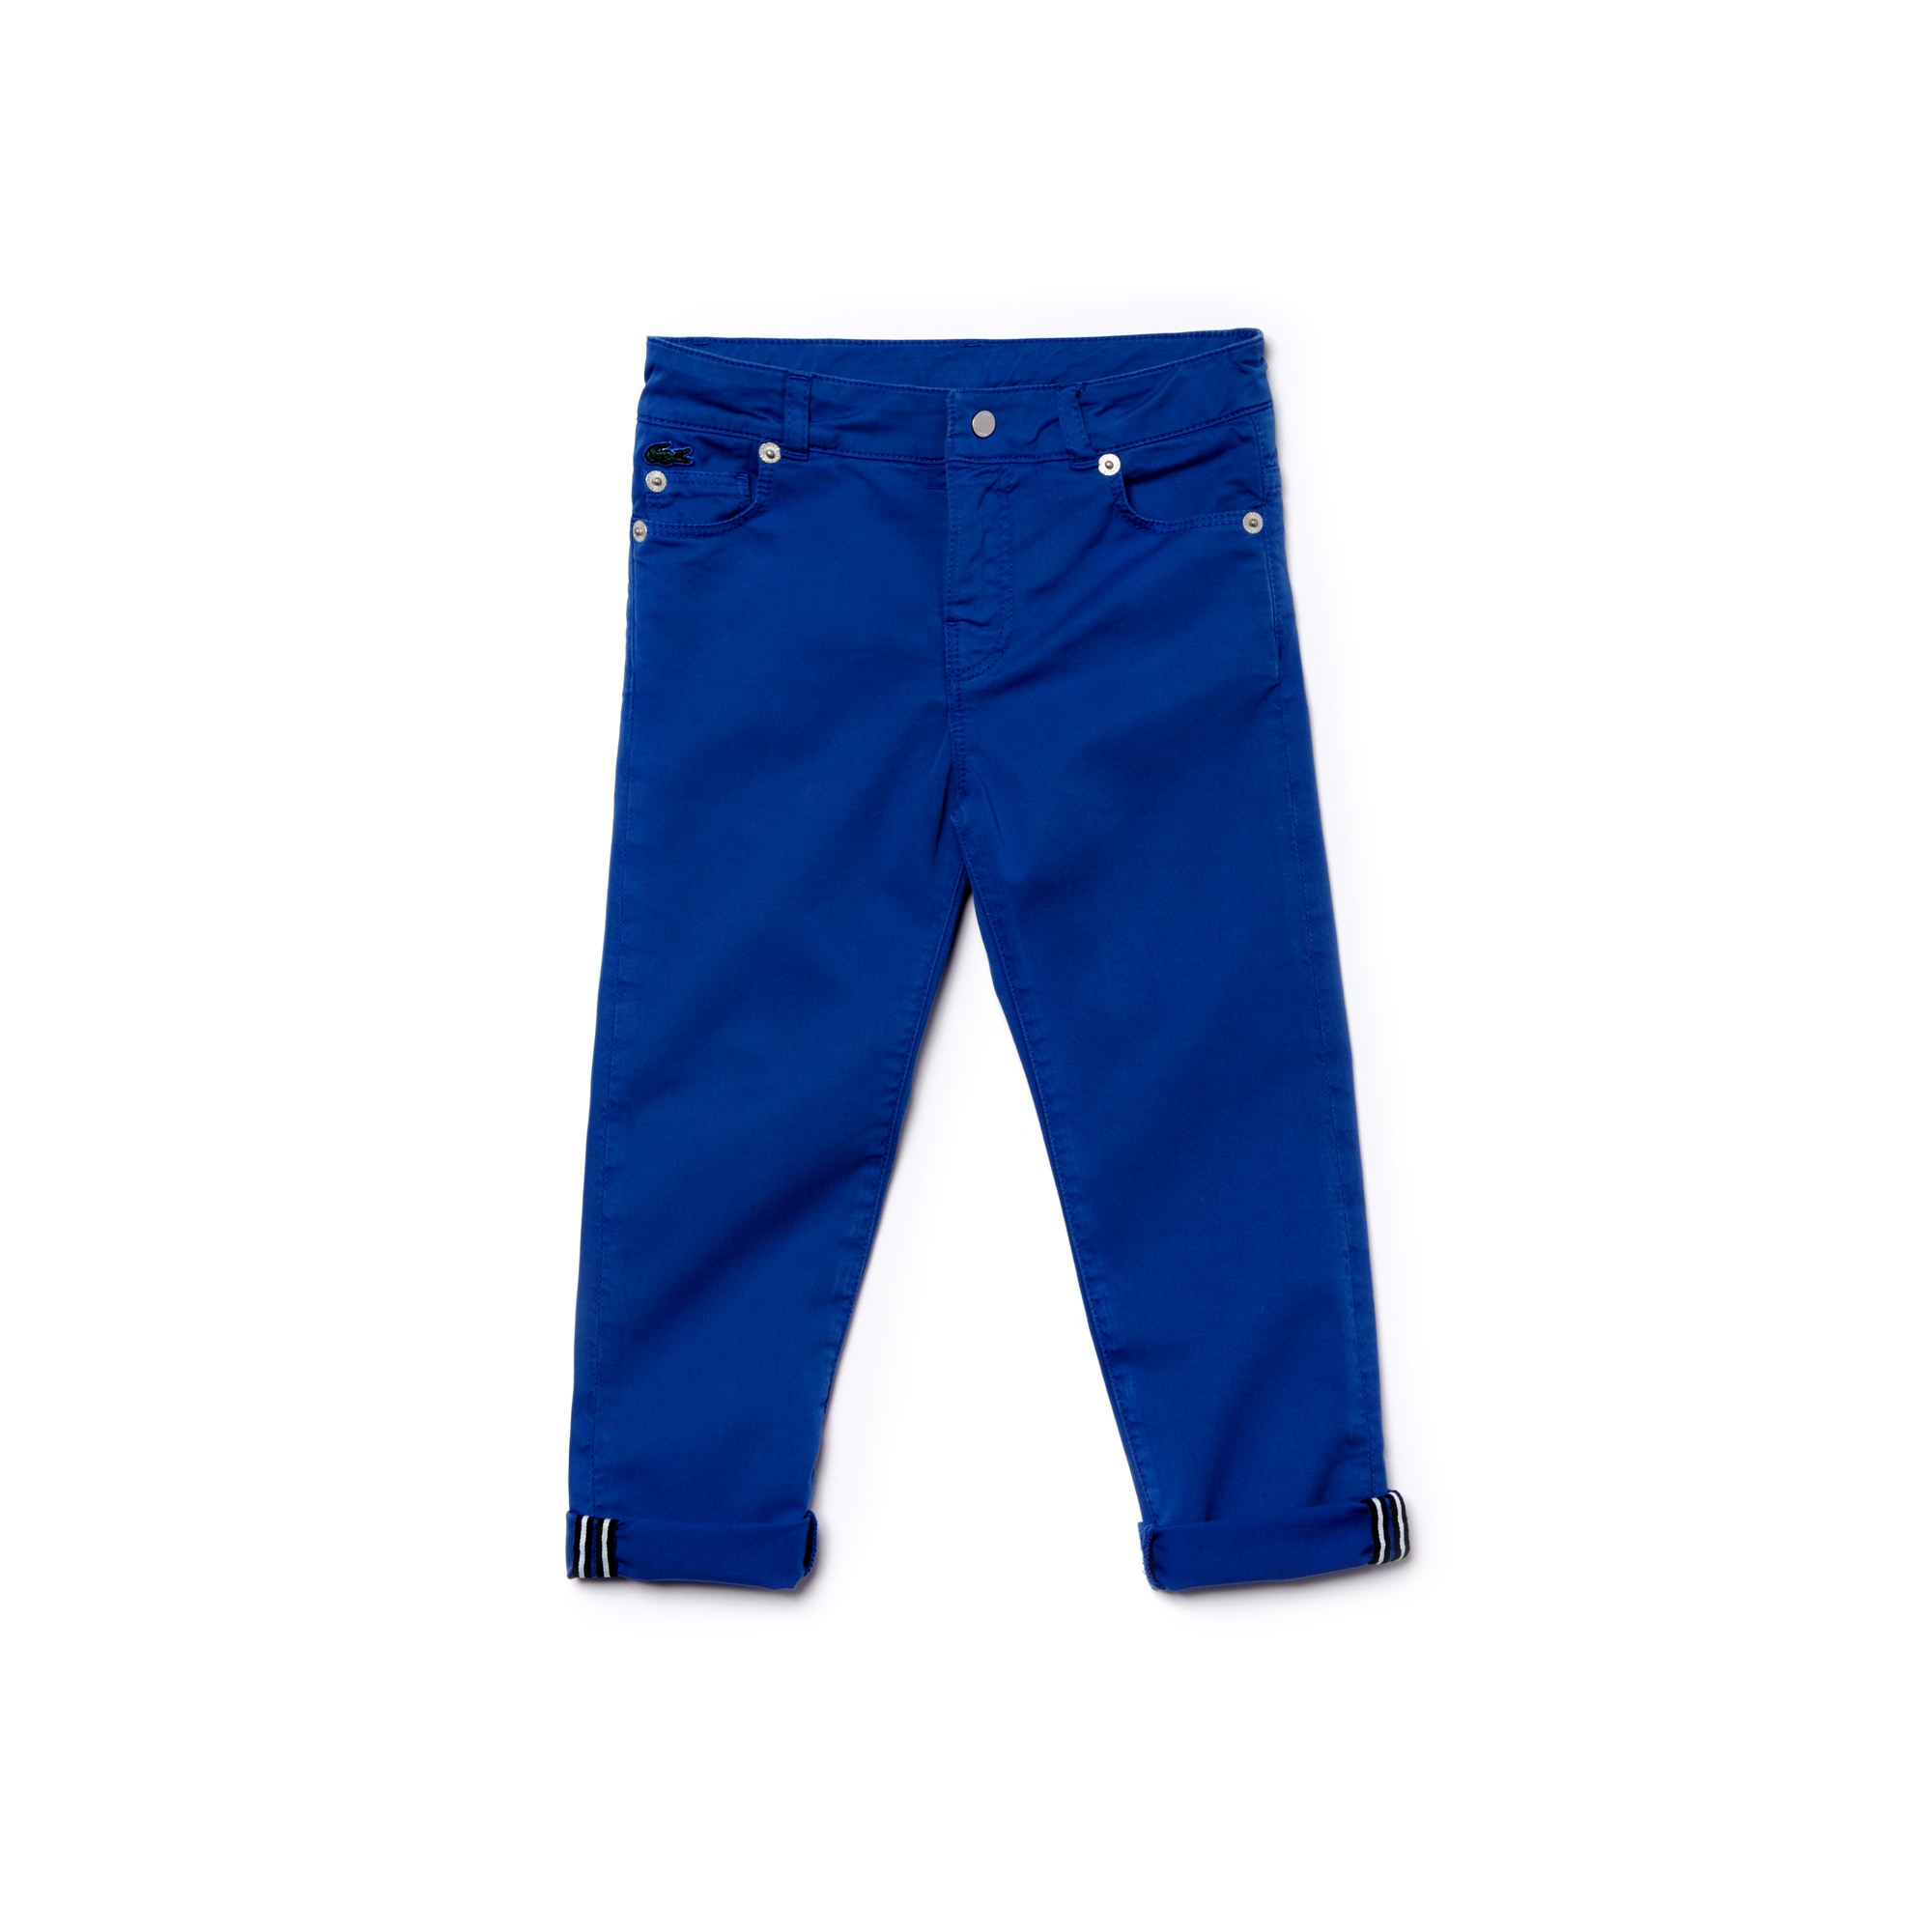 Boys' 5 Pocket Stretch Pants